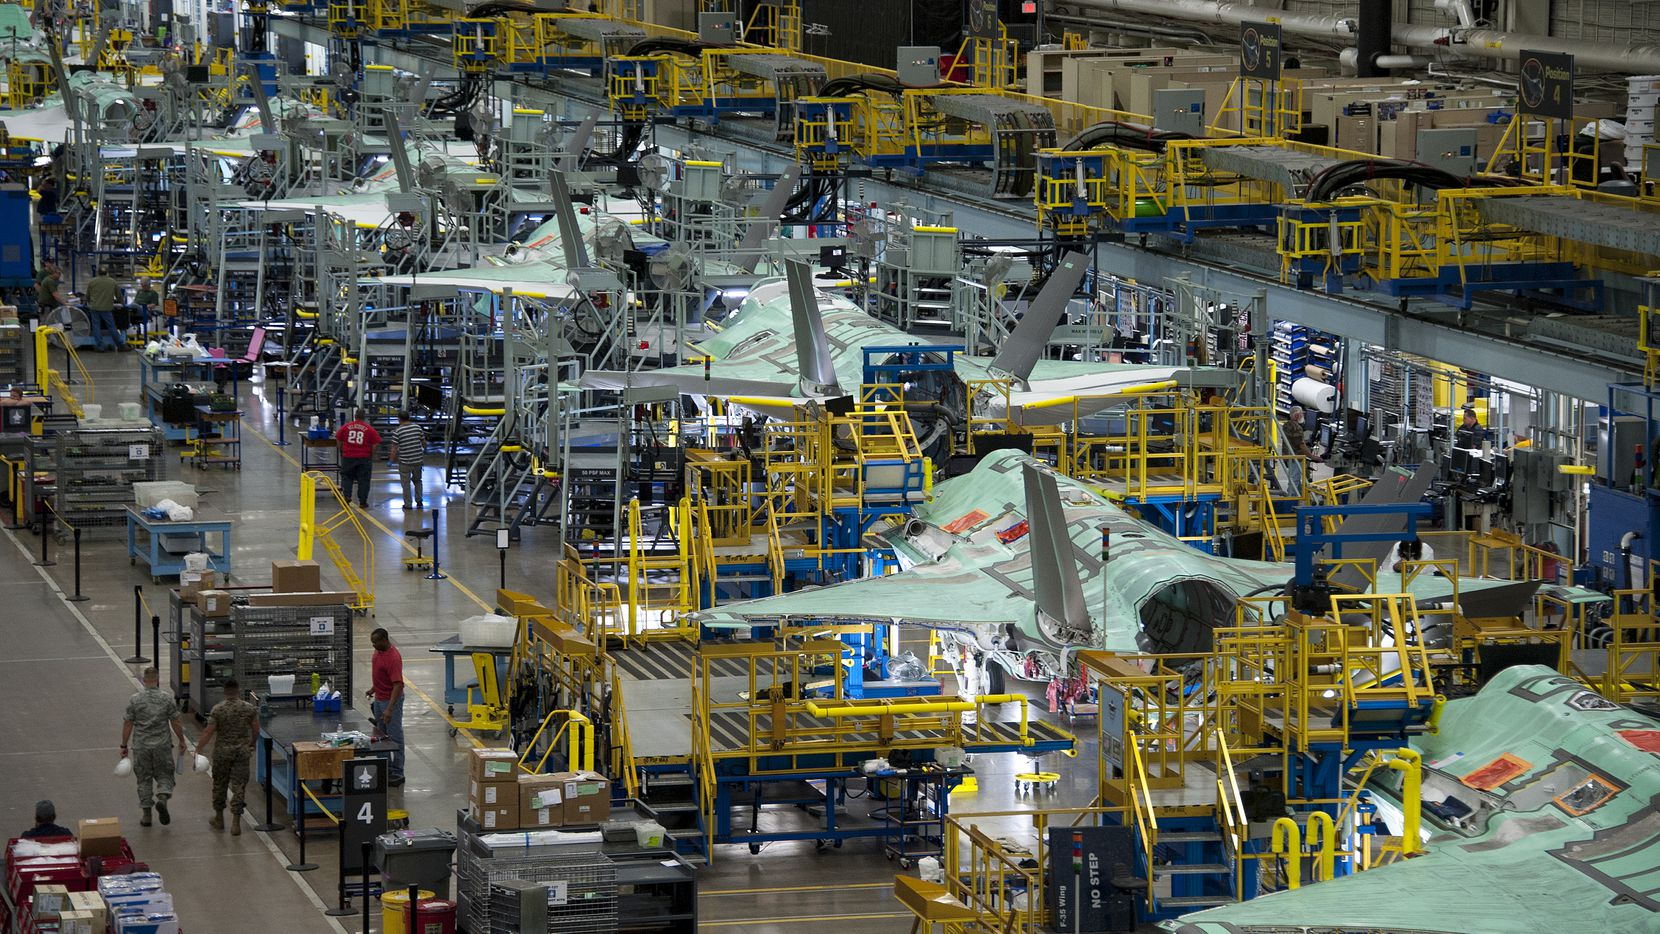 F-35 Lightning II jets being manufactured at Lockheed Martin's facility in Fort Worth, Texas.Lockheed Martin Fort Worth Texas Photo by Alexander H Groves  Production Line from Monorail   FP170764   1707383  JSF  F-35  AF Plant 4  04_06_17  Leeya Davis  Image has NOT been released  FOUO  FOR OFFICIAL USE ONLY